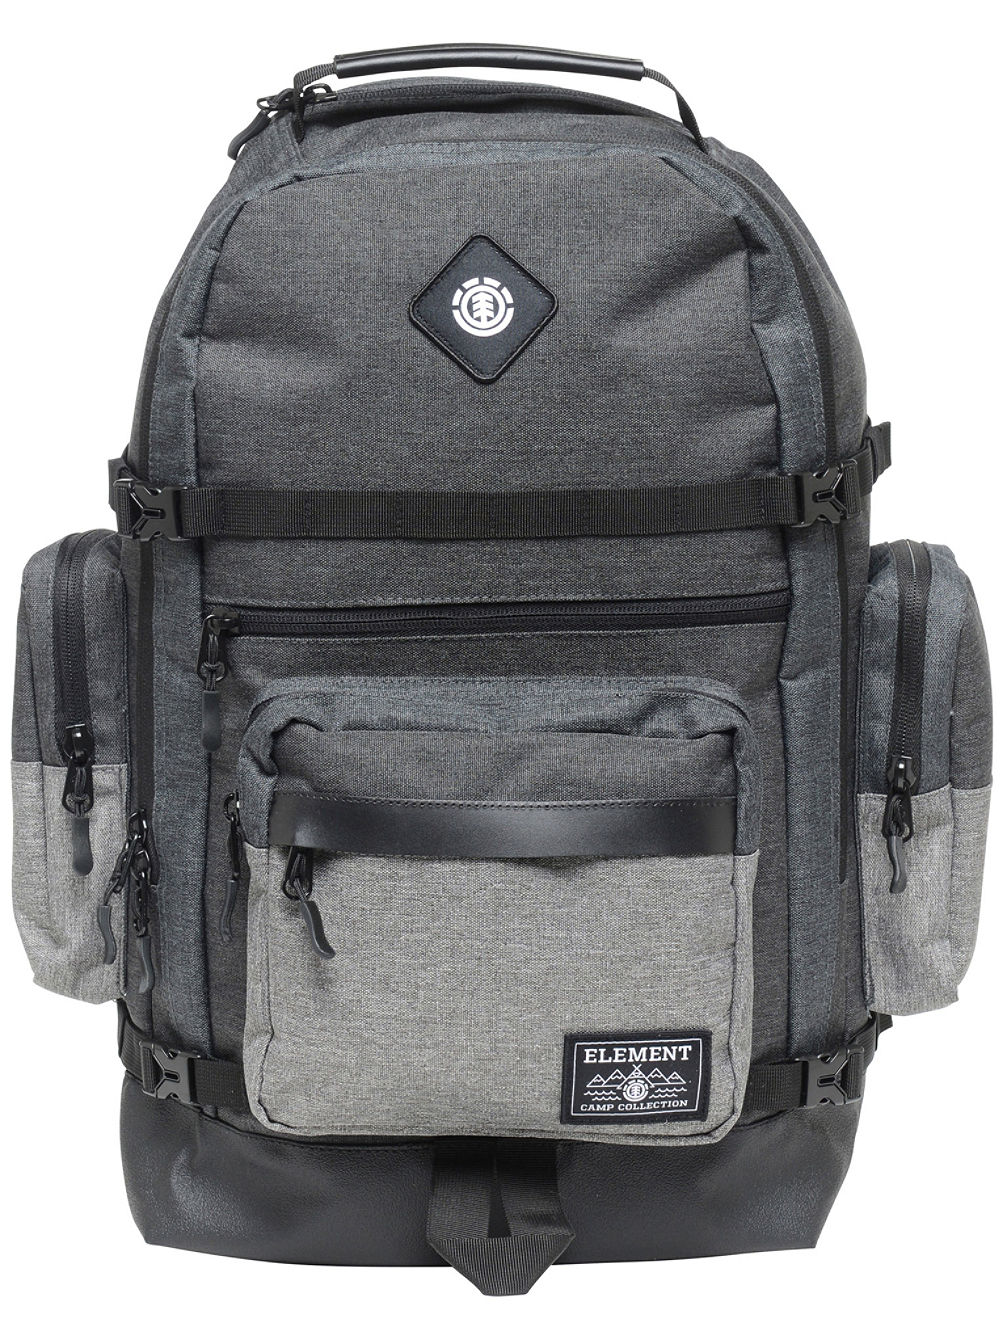 Excurser Backpack